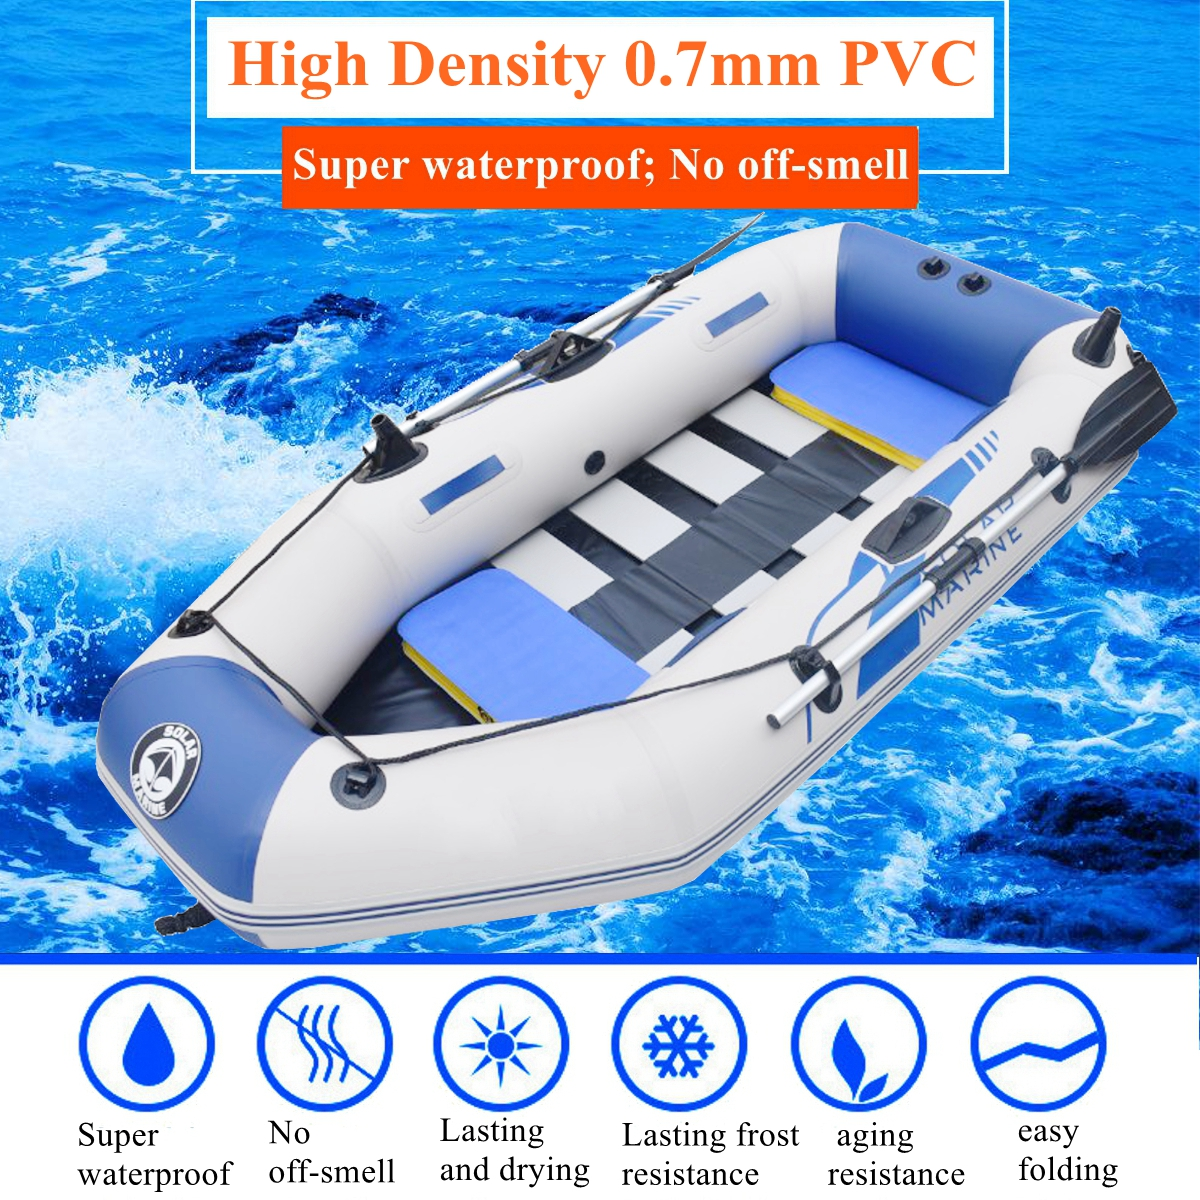 1.75/2m slats bottom inflatable boat PVC material professional inflatables boat fishing boat laminated wear-resistant boat boat